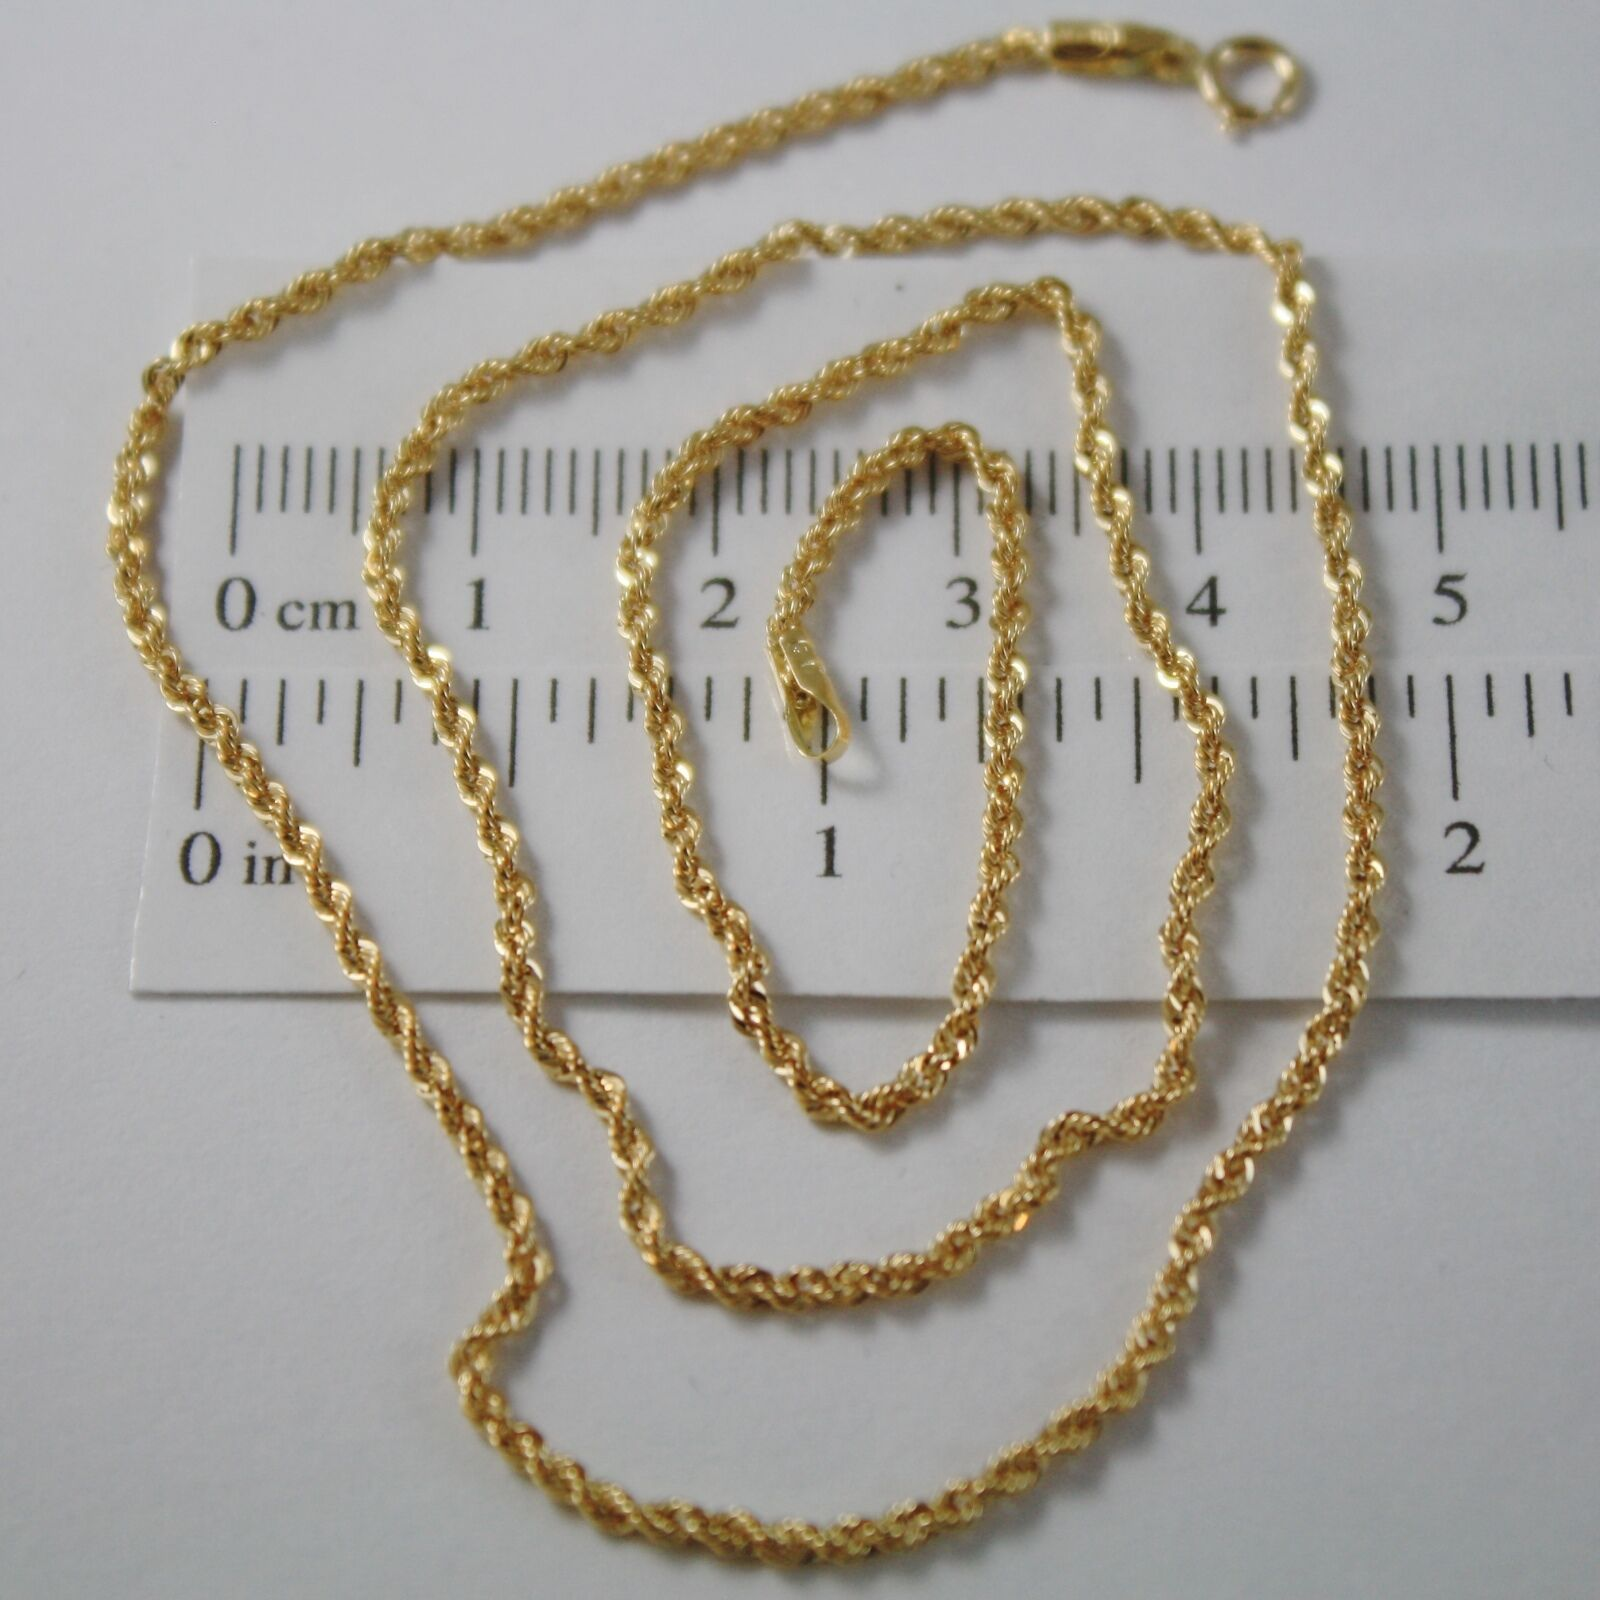 18K YELLOW GOLD CHAIN NECKLACE, BRAID ROPE 18 INCHES, 45 CM LONG, MADE IN ITALY